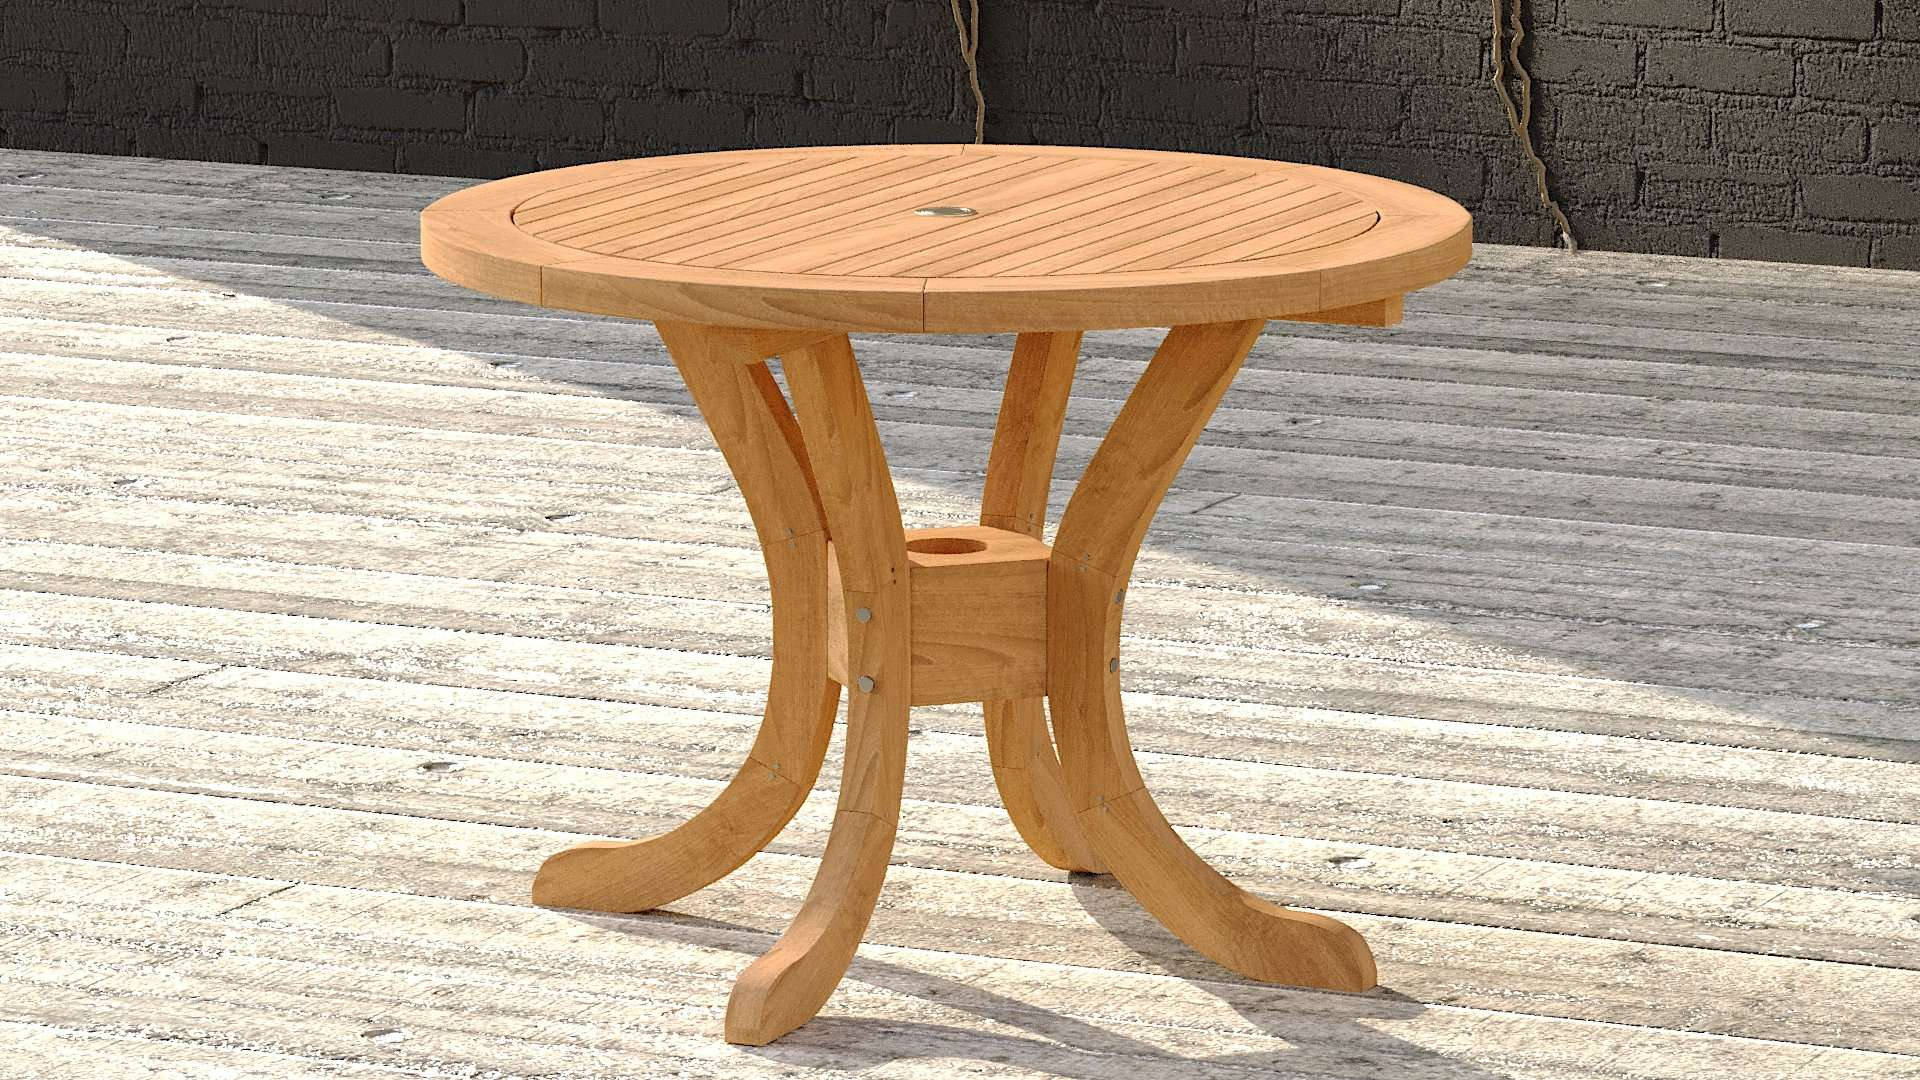 Garden Teak Pedestal Table 105cm (4 Seater)  - Chic Teak® | Luxury Teak Furniture